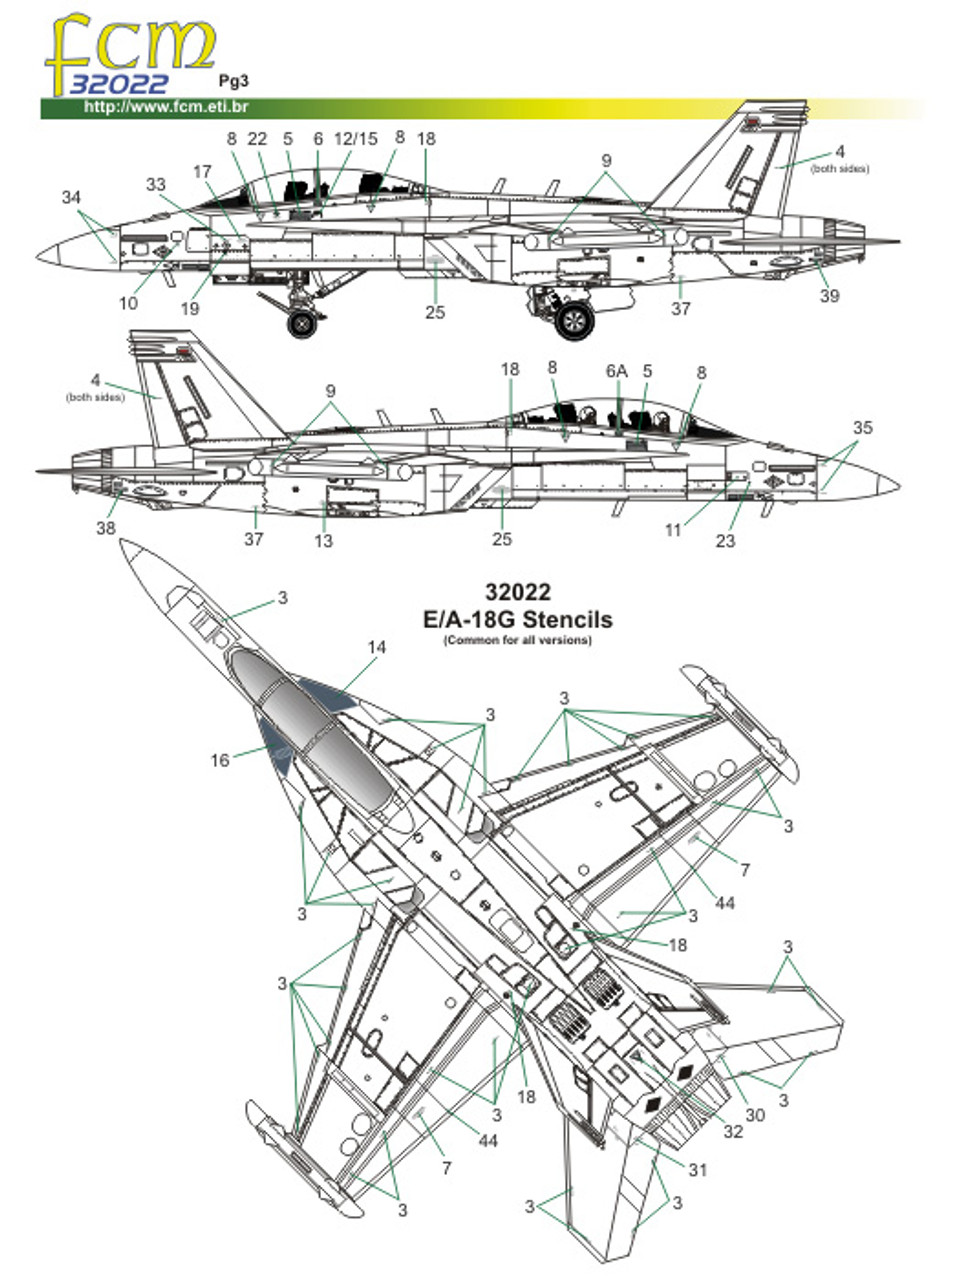 FCM E/A-18G Growler - VAQ-132 Scorpions Decals 1:32 Scale (FCD032022)